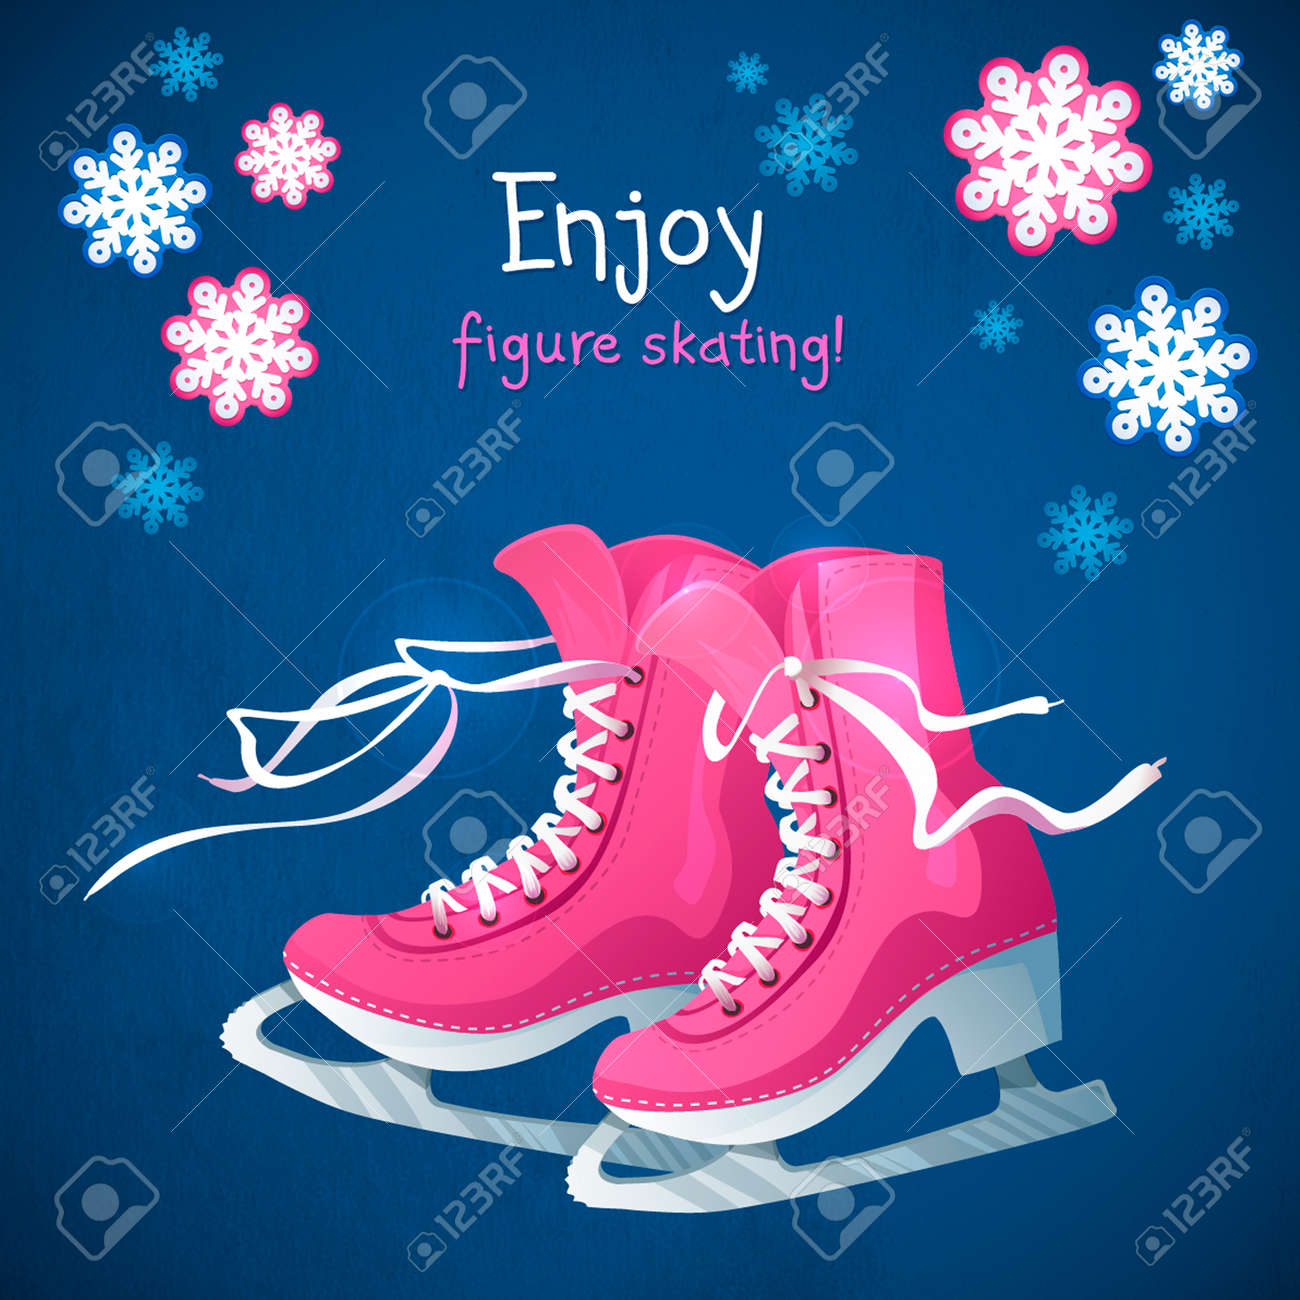 Retro Christmas card with ice skates. Blue grunge winter background with snow flakes and skate boots. - 23192232